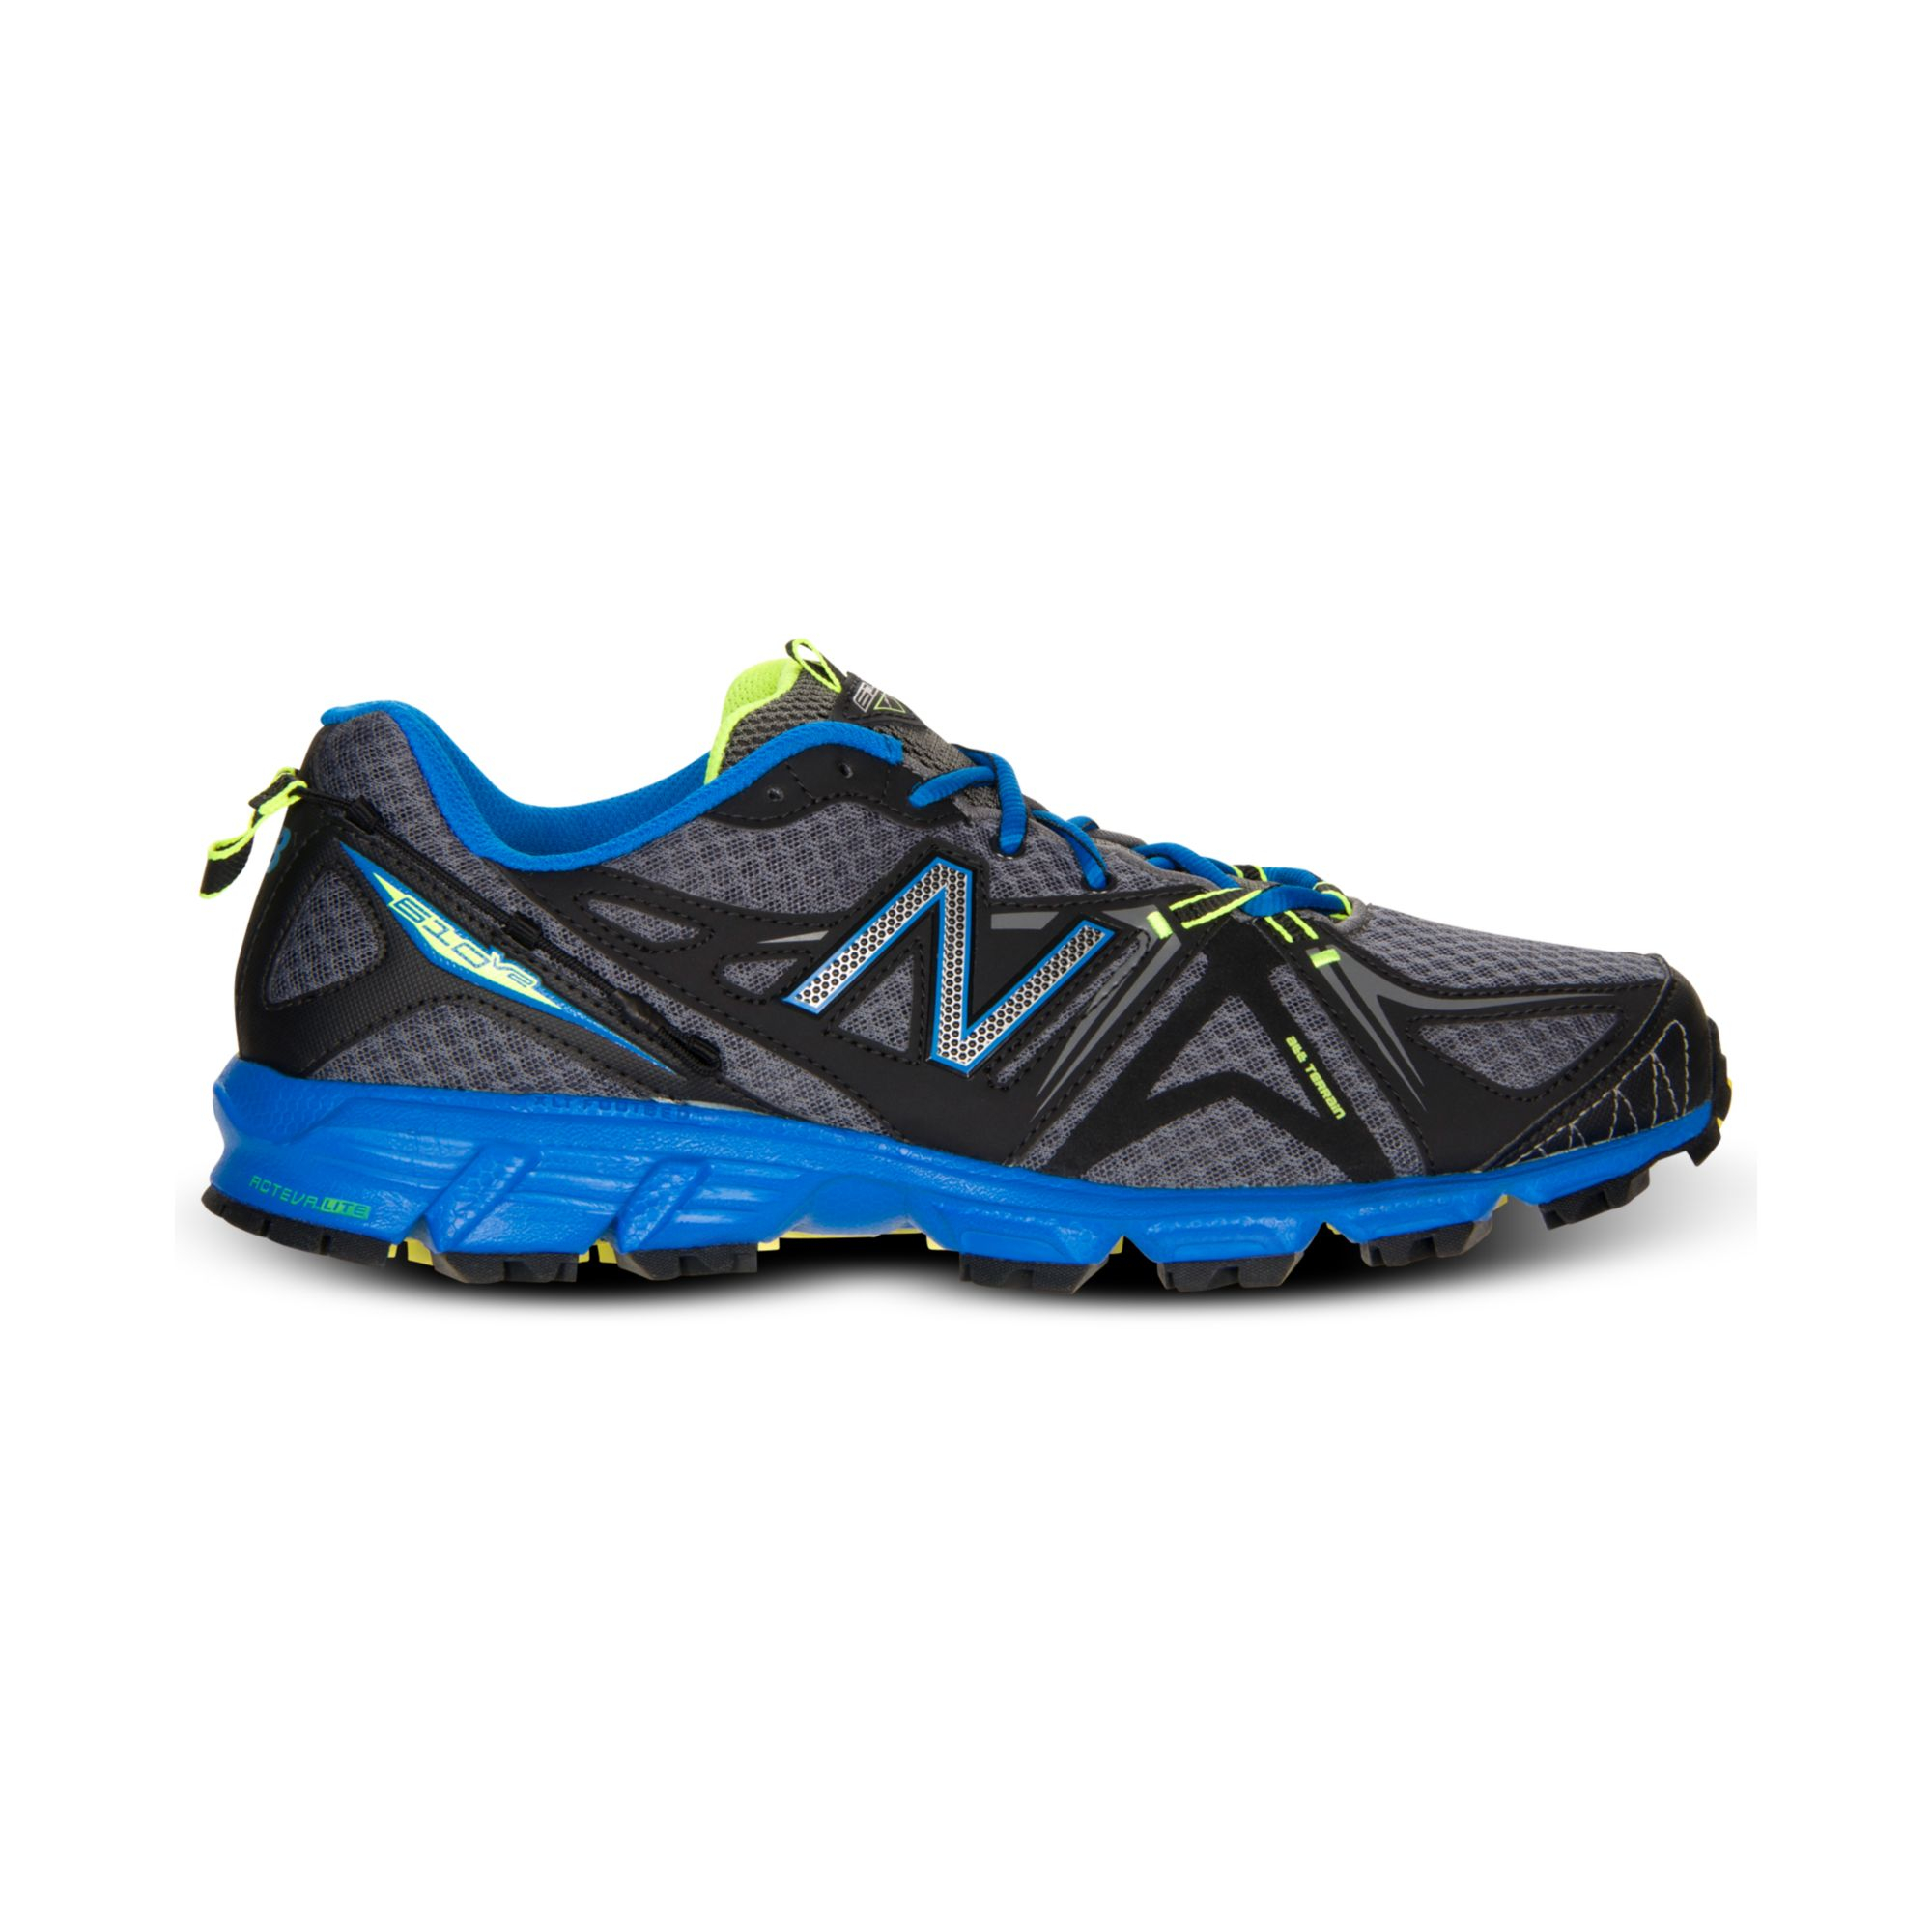 Top Of The Line New Balance Running Shoe